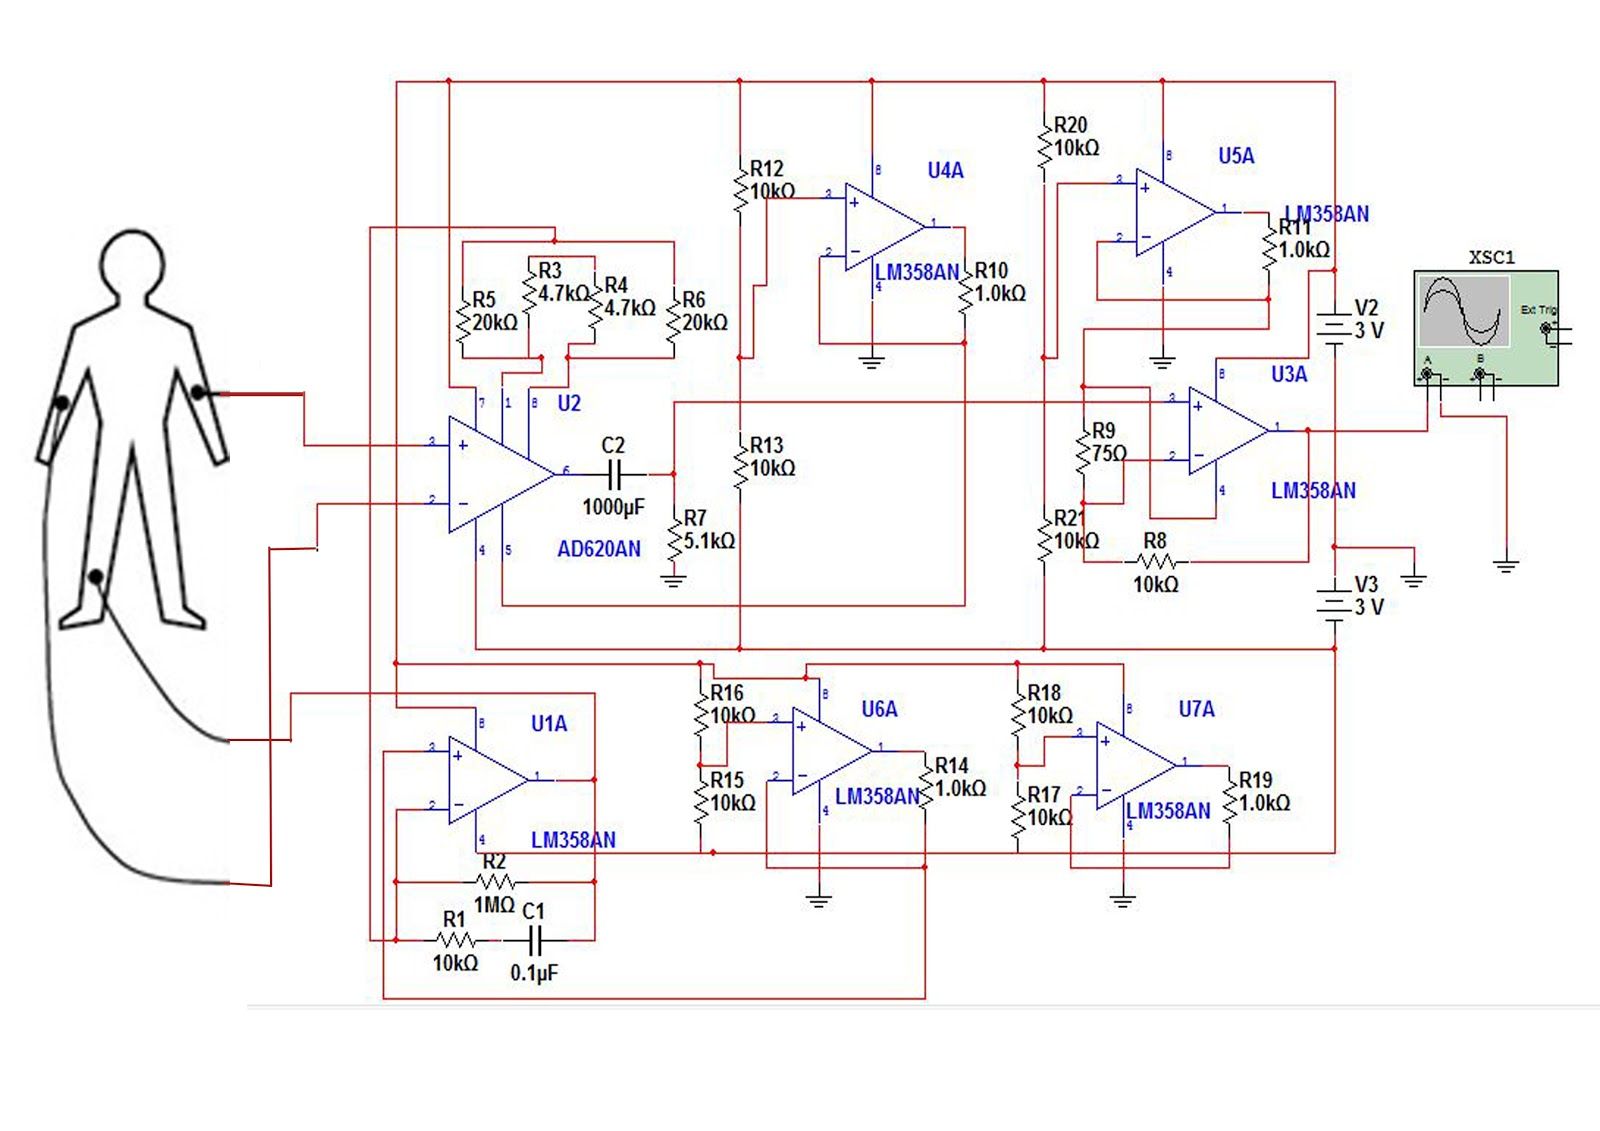 wiring diagram ecg wiring diagram pagerelated circuits electric pulse treatment circuit ecg schematic with wiring diagram [ 1600 x 1131 Pixel ]